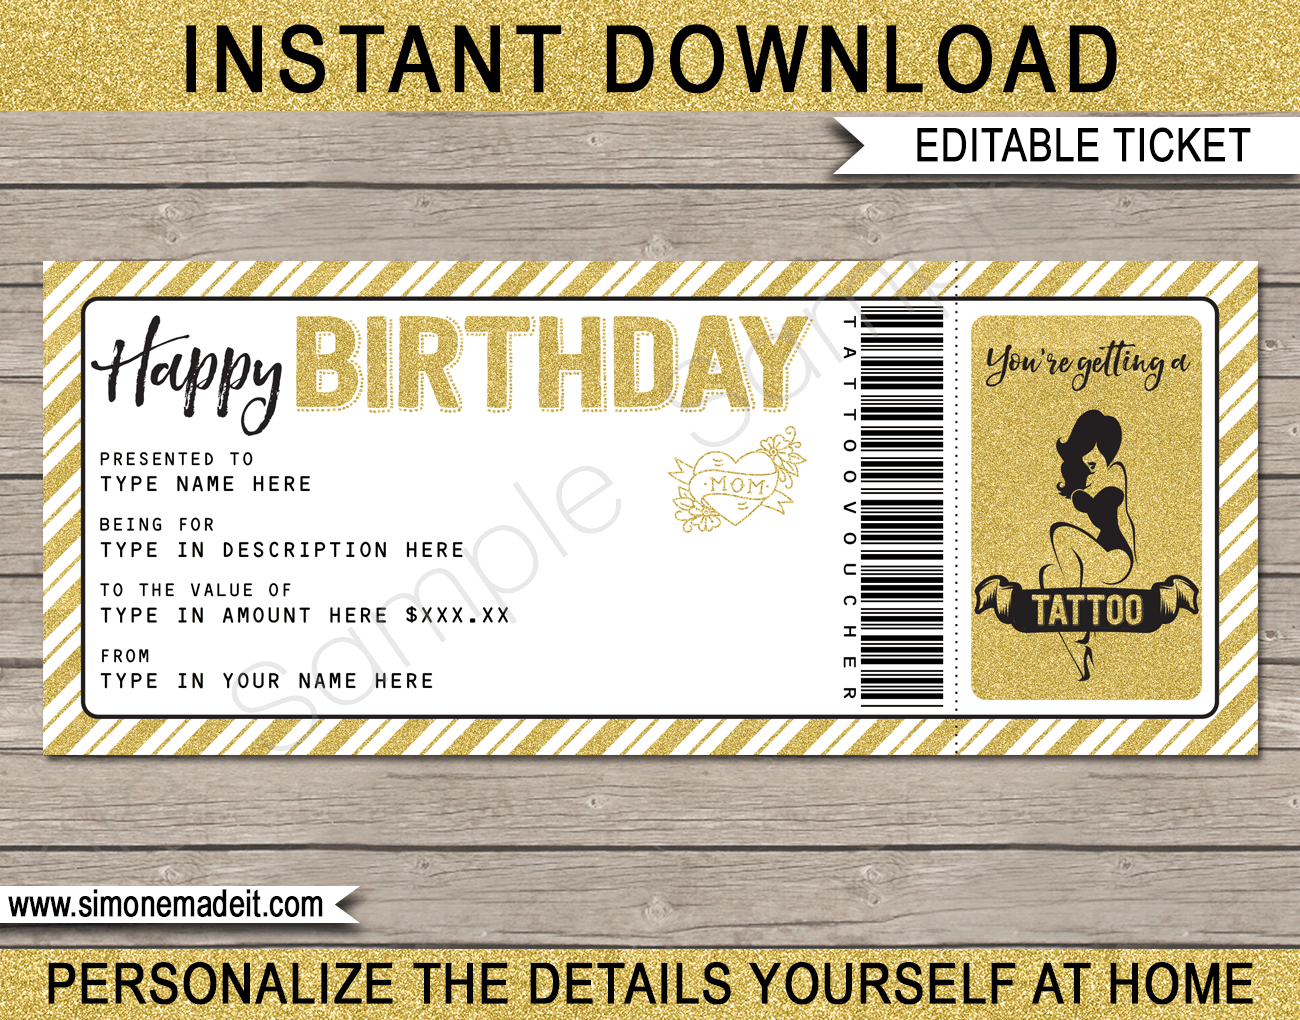 Birthday Tattoo Gift Vouchers For Tattoo Gift Certificate Template